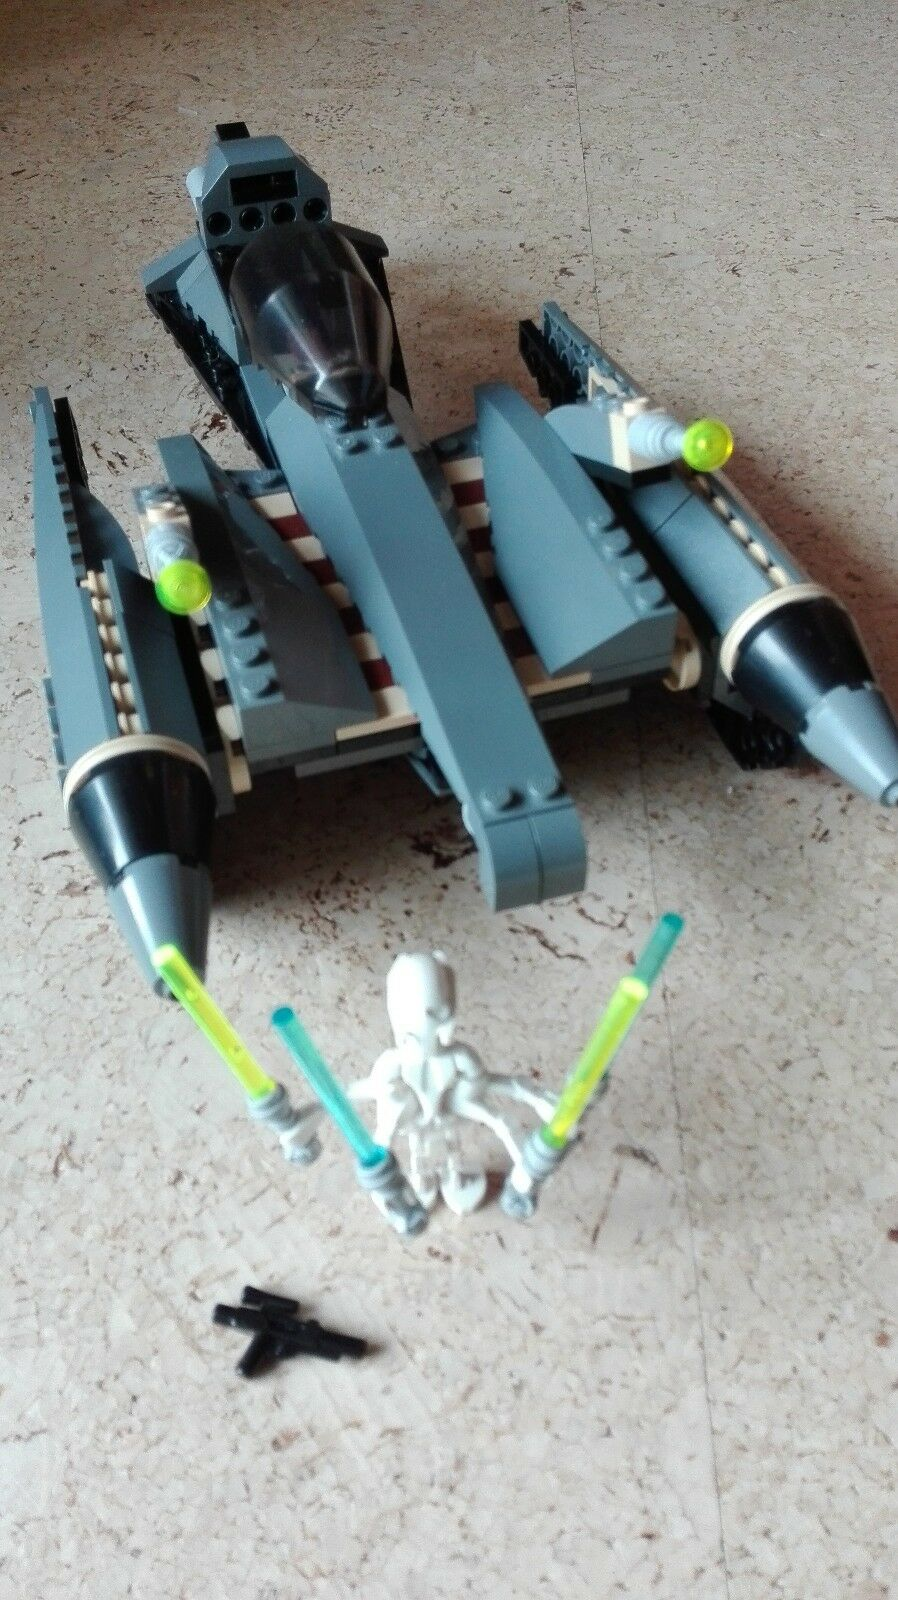 LEGO Star Wars General Grievous Starfighter (7656)